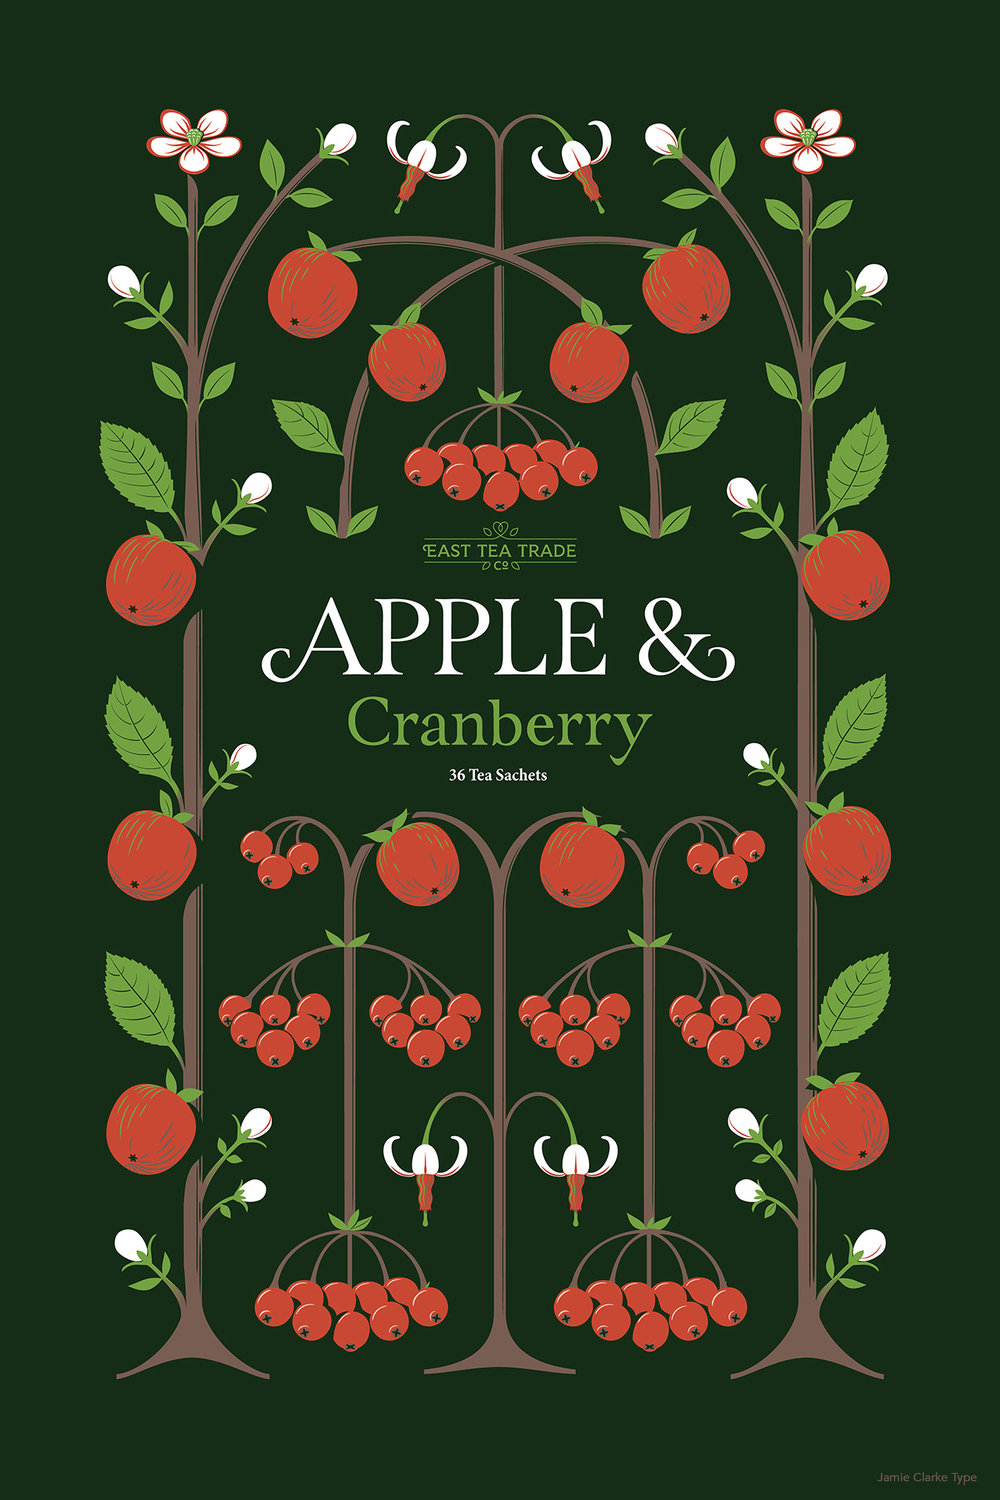 Apple and Cranberry design. Cranberry flowers have a beautiful and distinct shape which worked really well in the limited colour palette